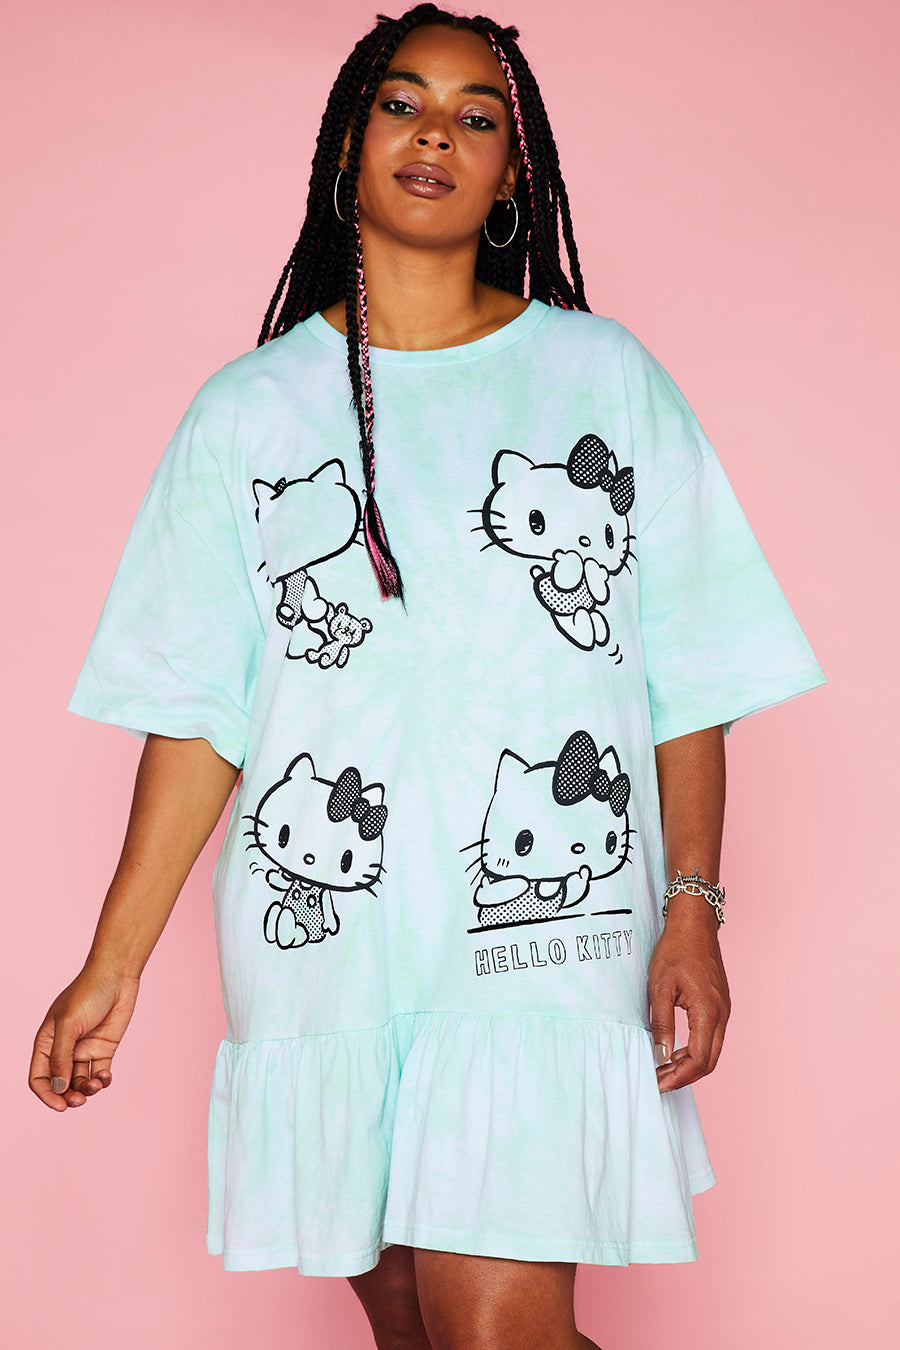 HELLO KITTY TIE DYE FRILL TSHIRT DRESS CURVE